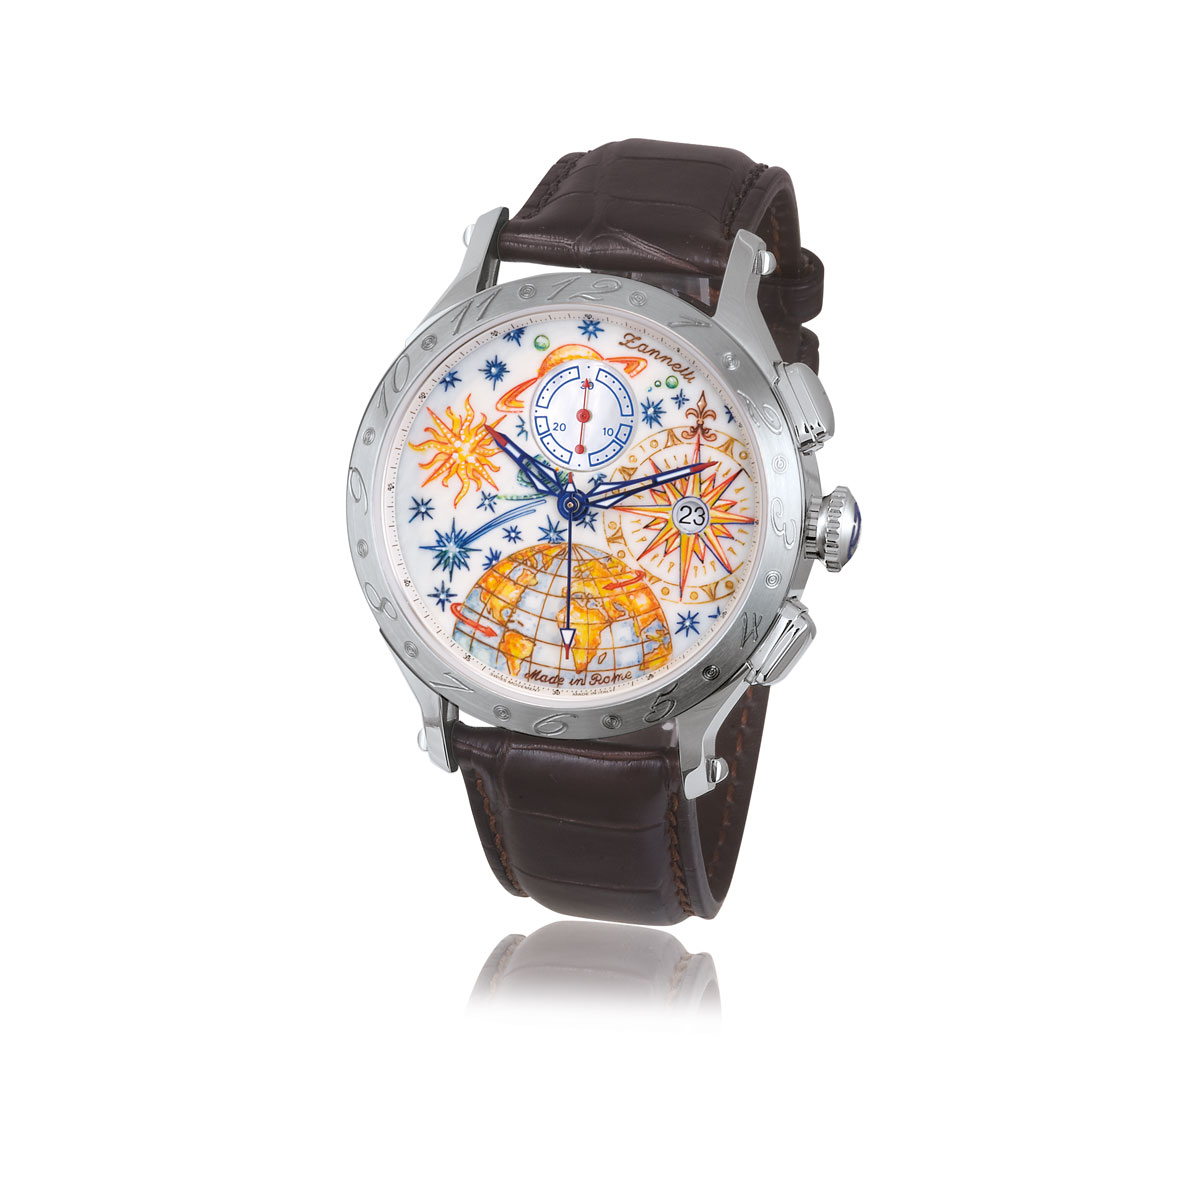 Zannetti Regent Full Sky Mk II Chrono Watch - Stainless Steel